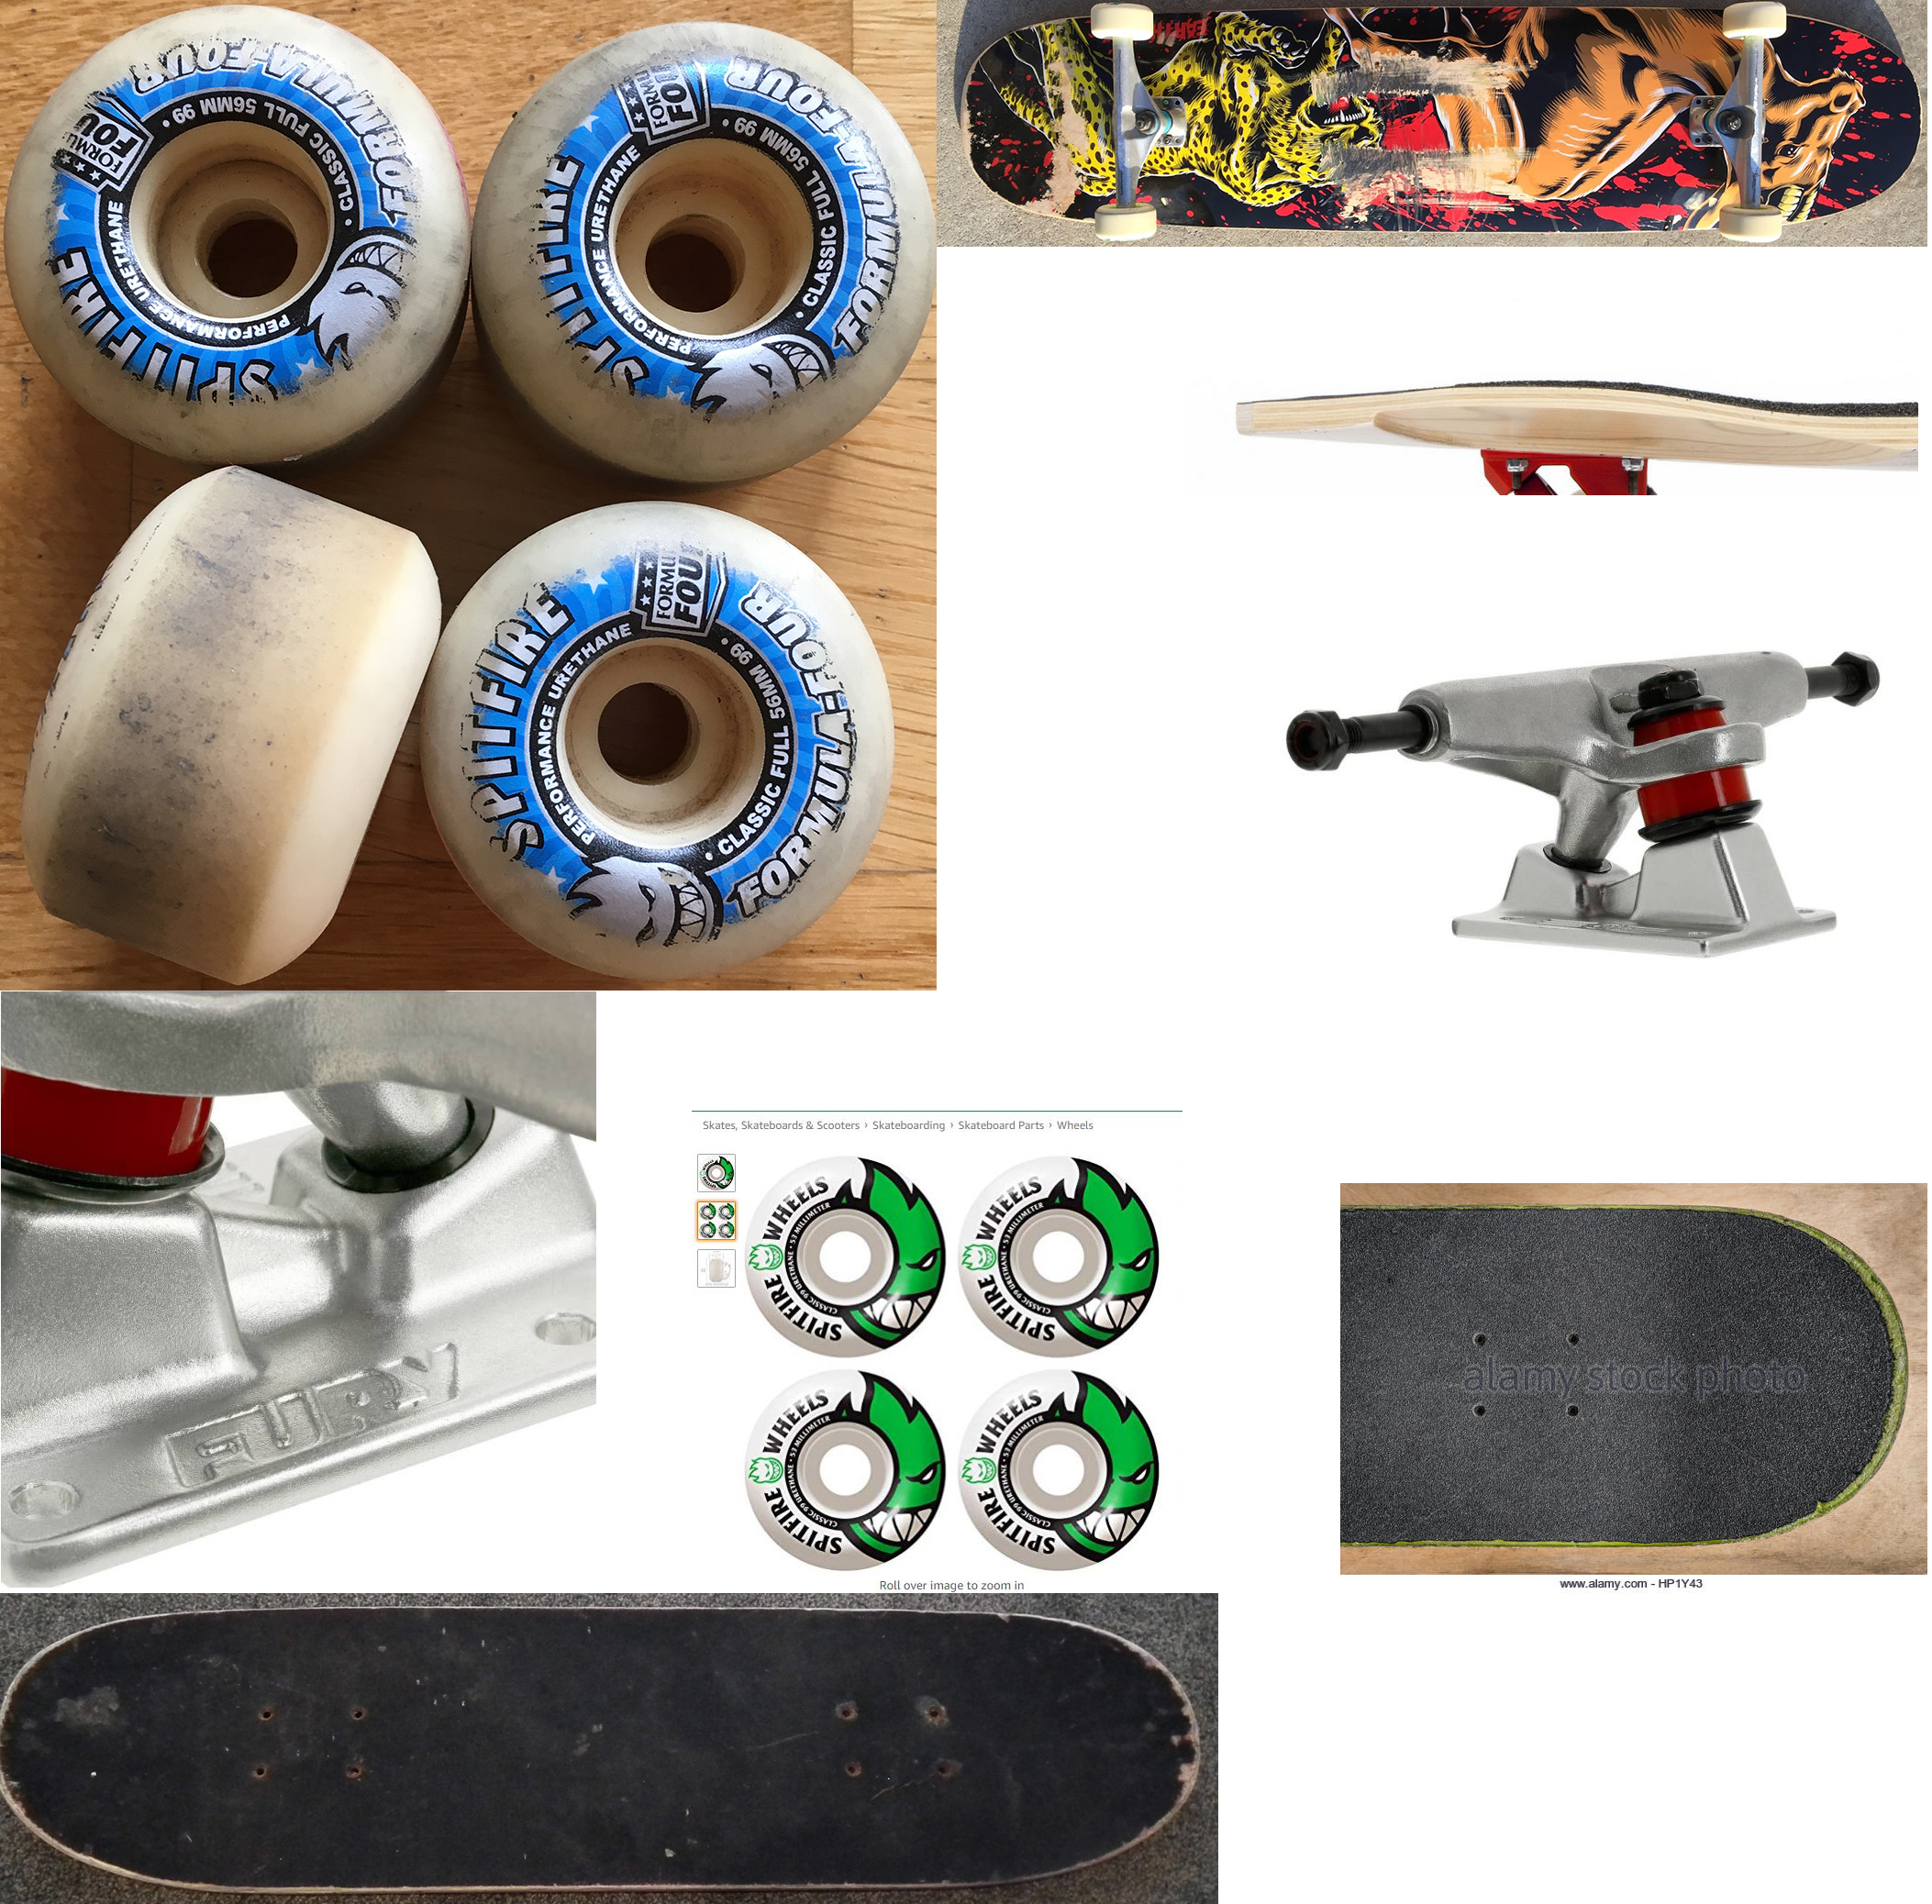 2c5bb6ce69 ENDED] Sketchfab Texturing Challenge: Skateboard - Weekly Challenges ...